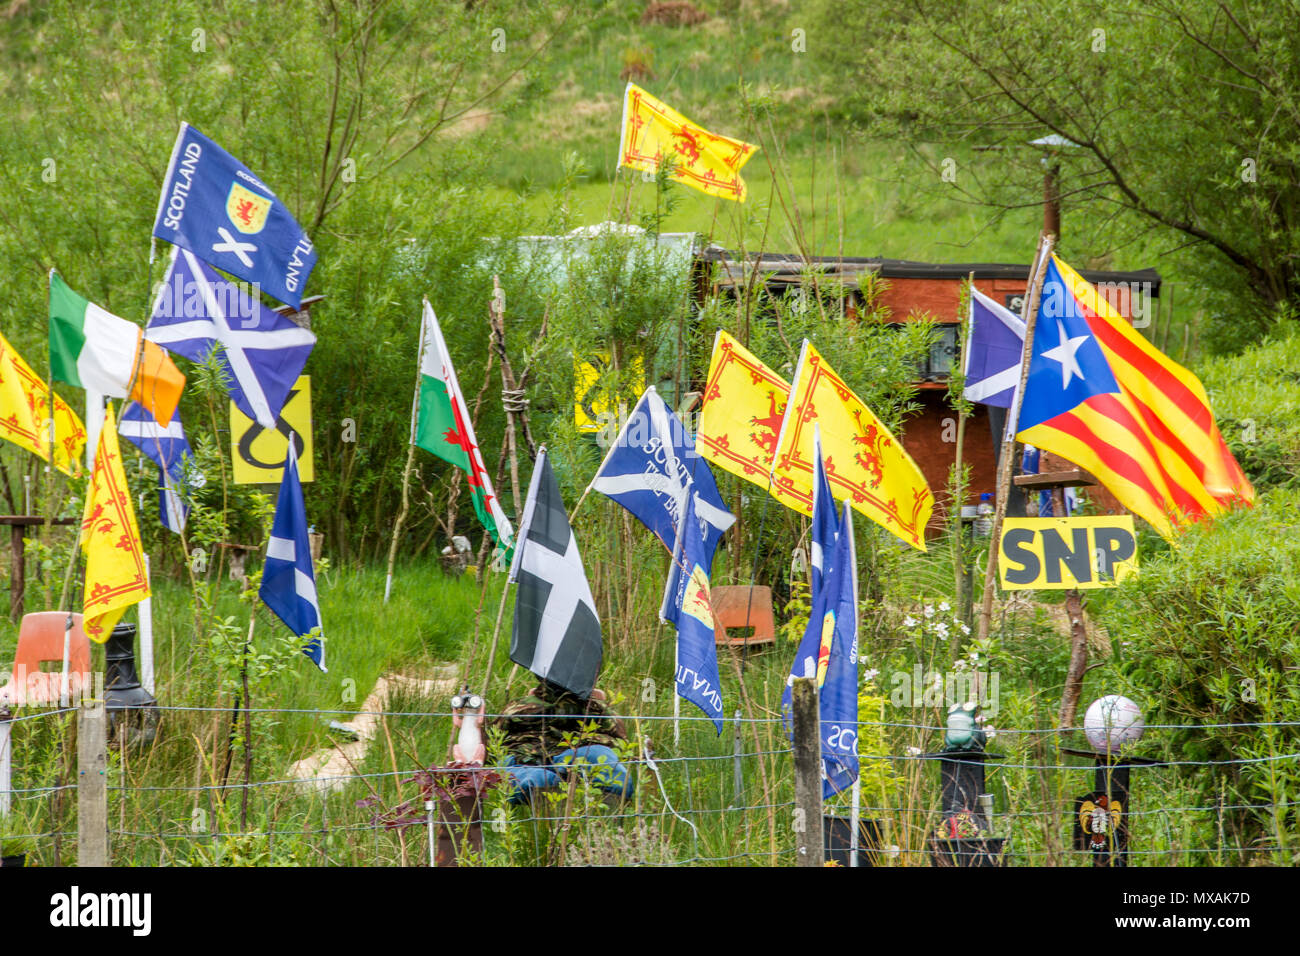 SNP flag in Scotland with national flag in garden. - Stock Image